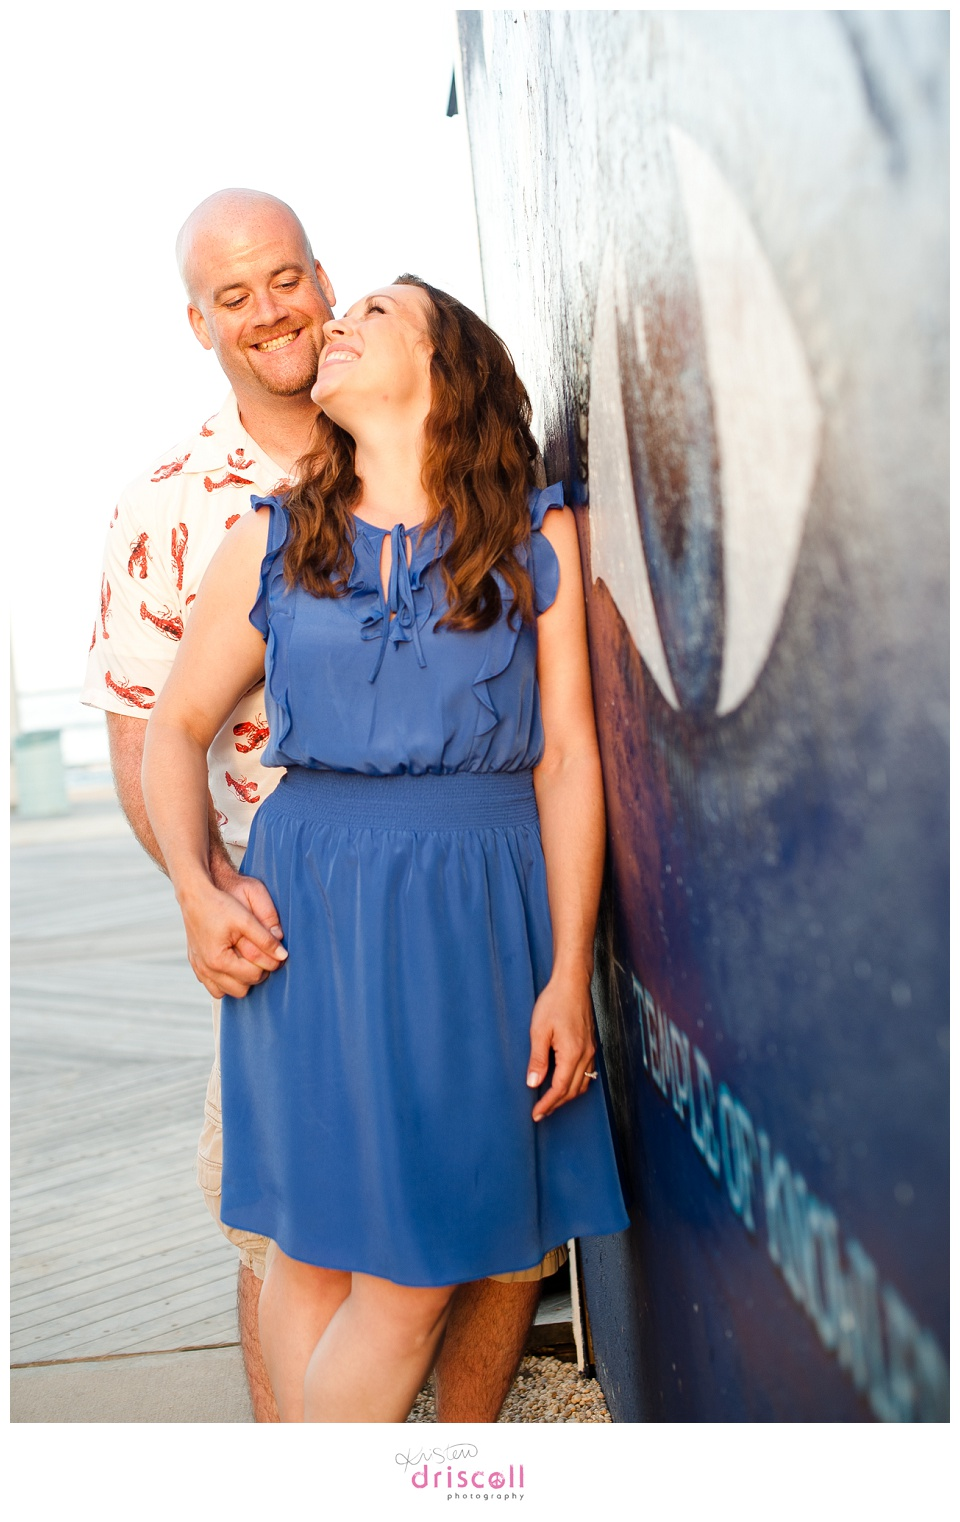 asbury-park-engagement-photo-kristen-driscoll-20130605-1565